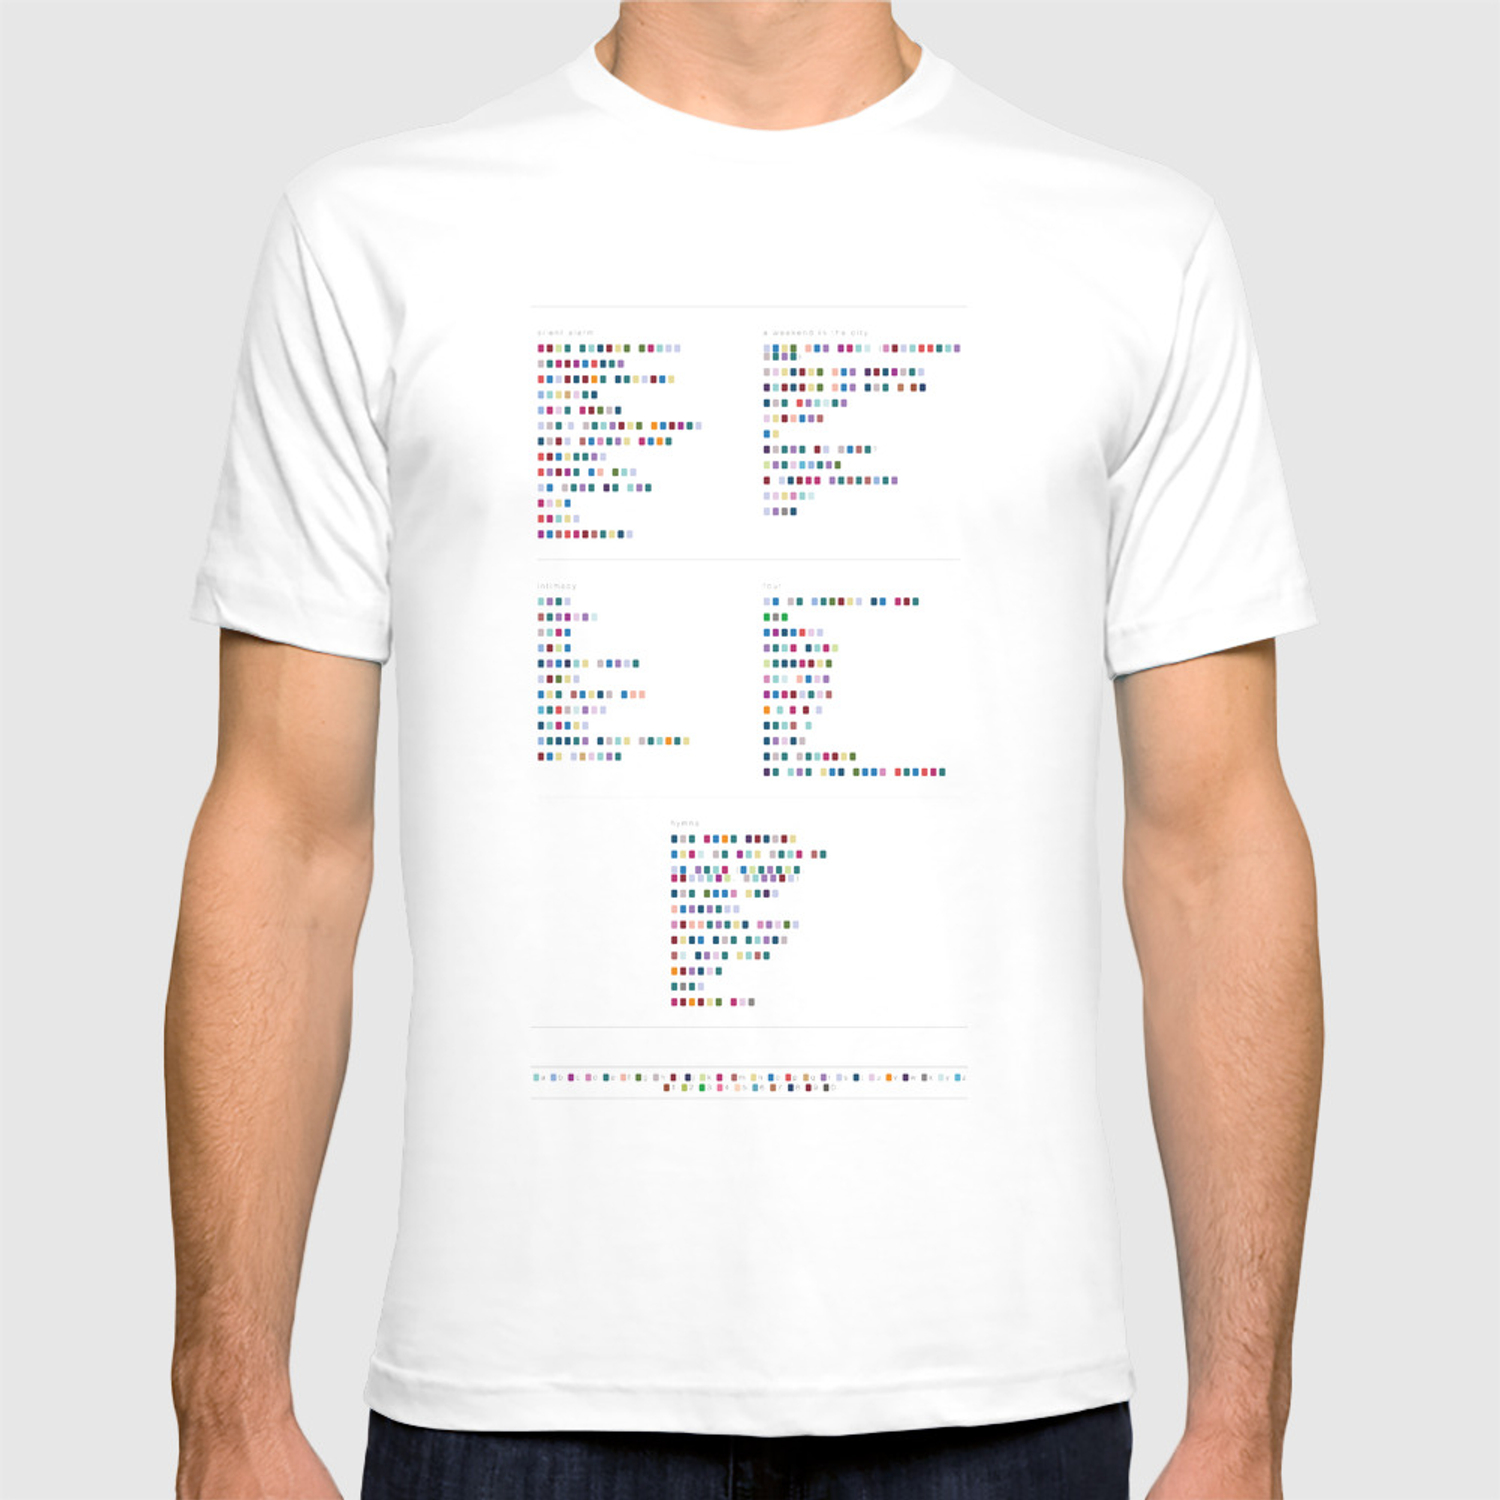 b15cee328df4 Bloc Party Discography - Music in Colour Code T-shirt by rosi_h | Society6